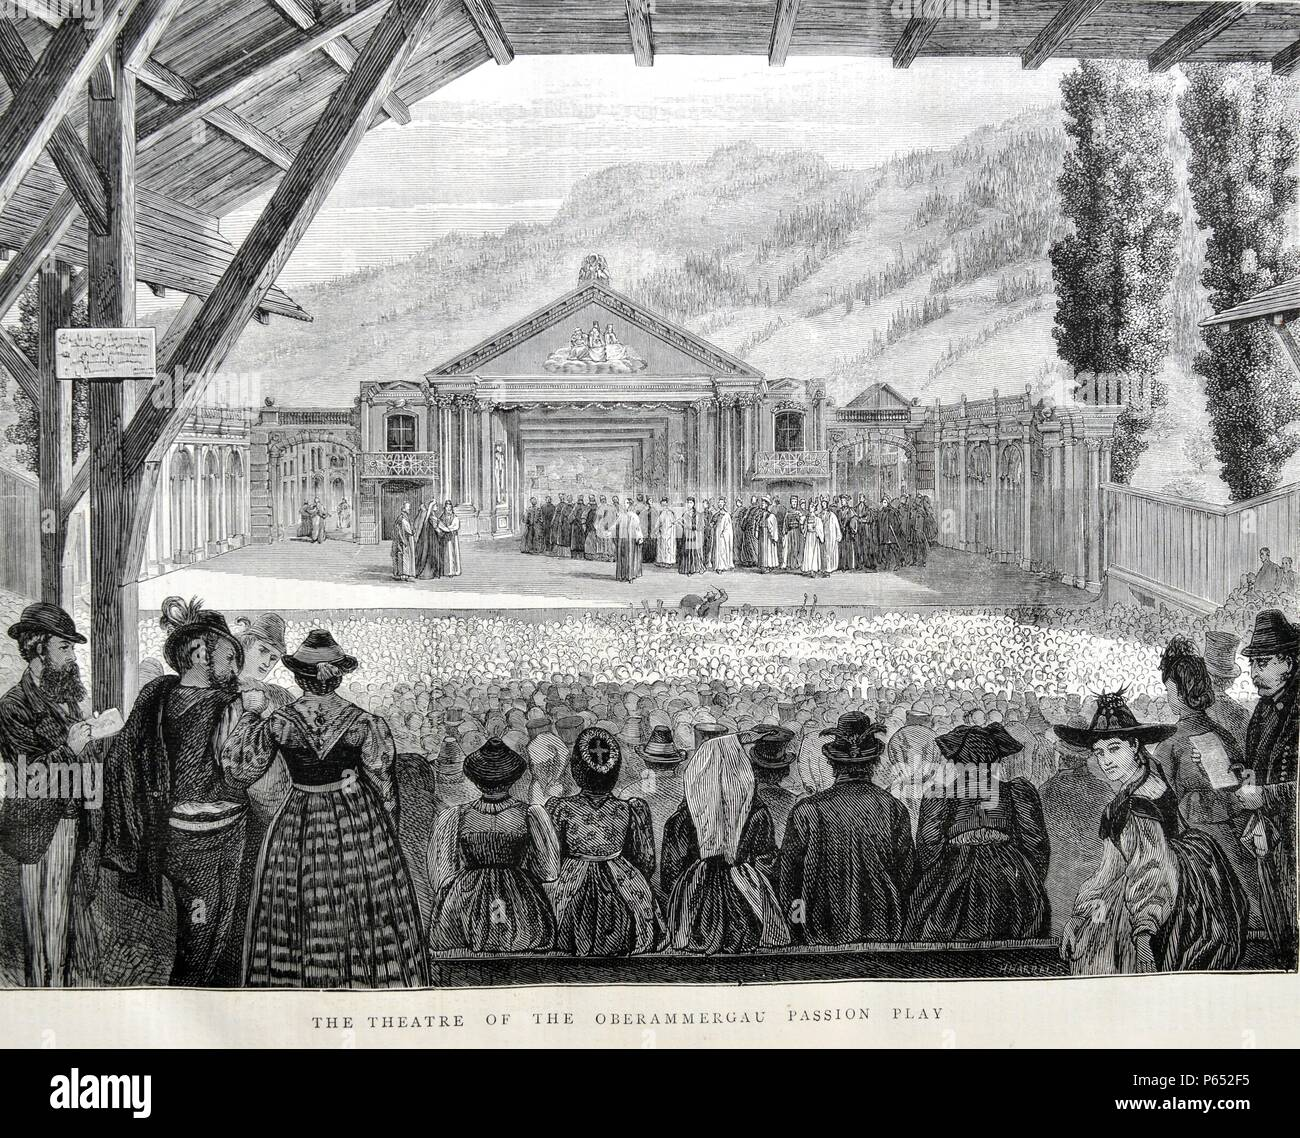 The Theatre of the Oberammergau Passion Play. A Passion Play is a dramatic presentation depicting the Passion of Jesus Christ: his trial, suffering and death. Anti-Semitism was prominent in Passion plays. Dated 1870 - Stock Image